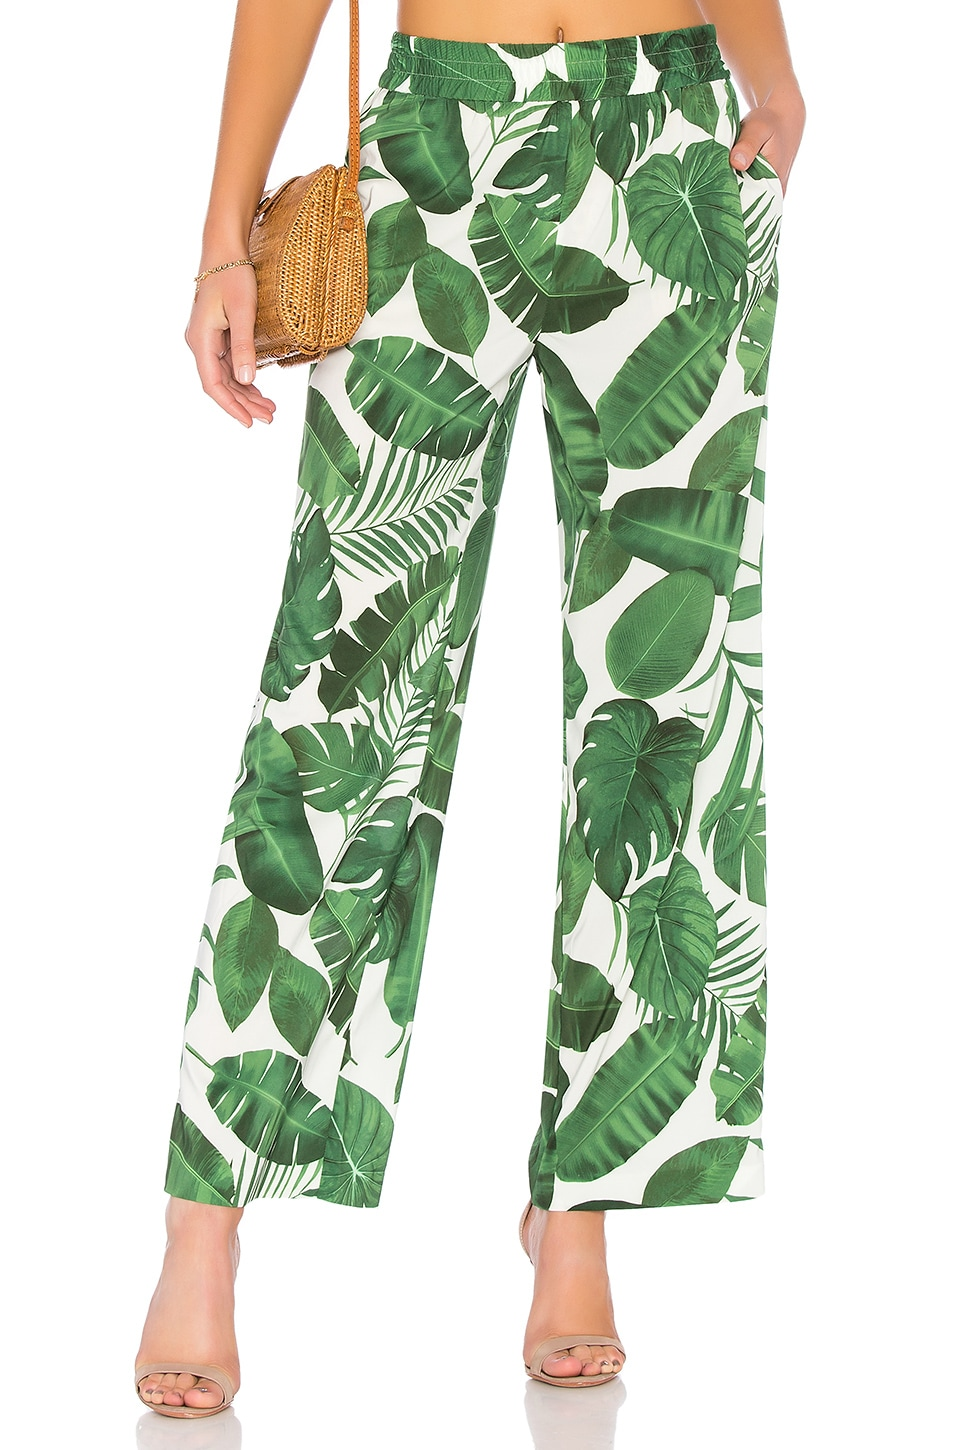 Alice + Olivia Benny Pant in Tropical Leaves